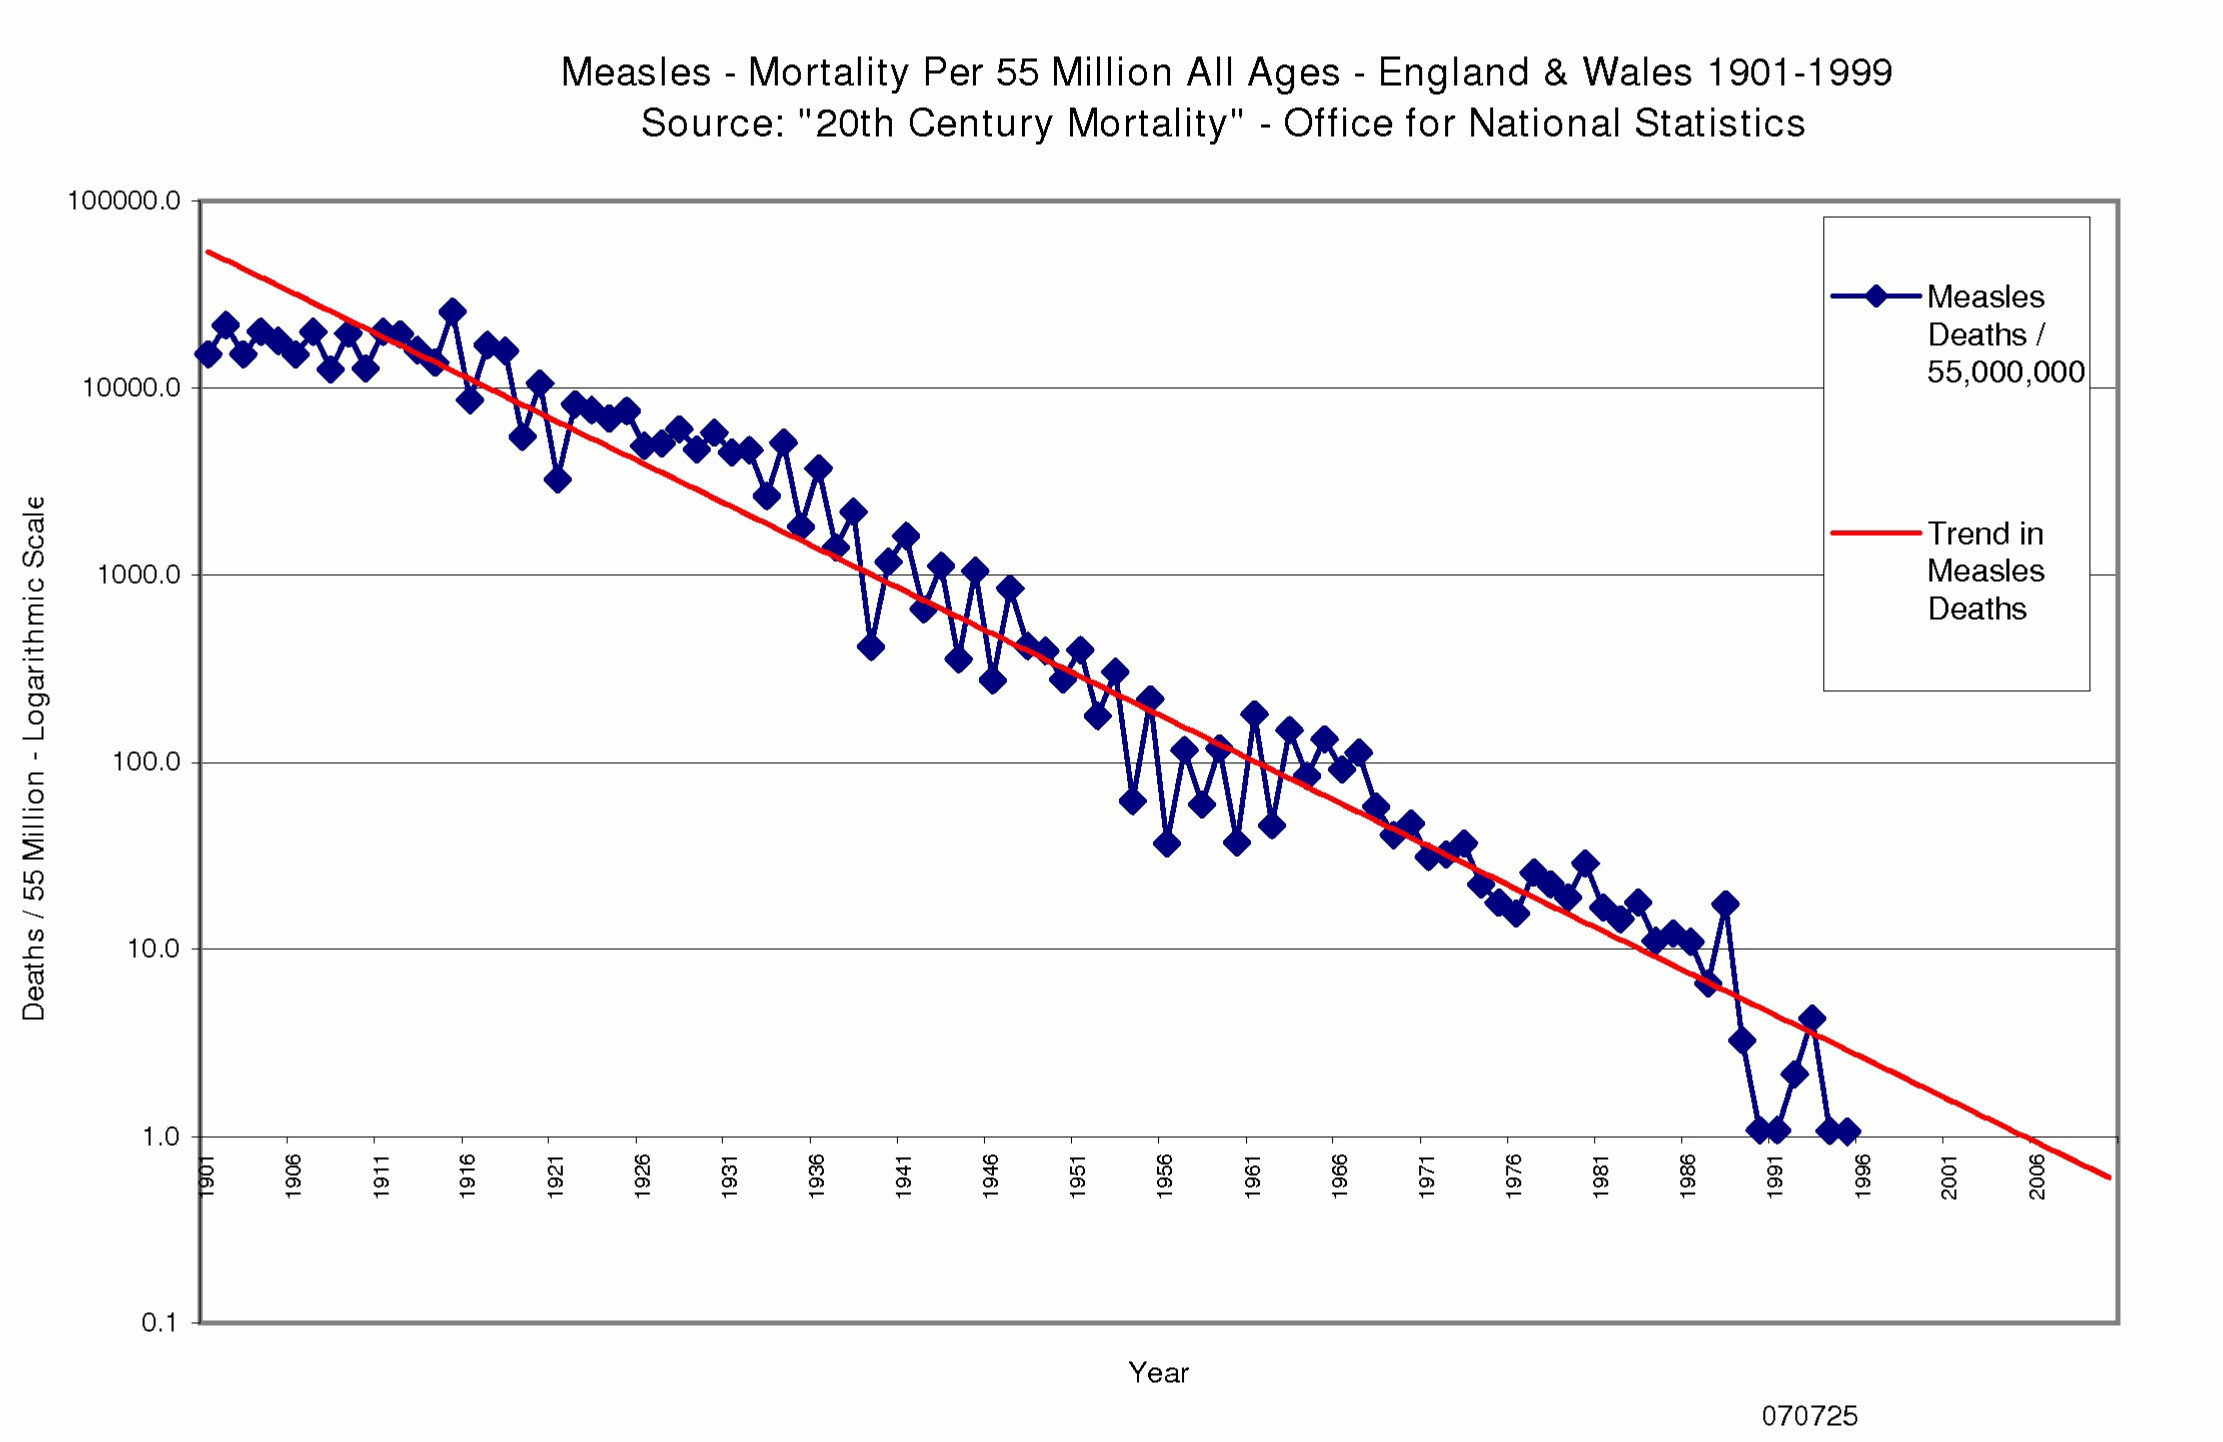 Measles mortality england wales 1901 to 1999